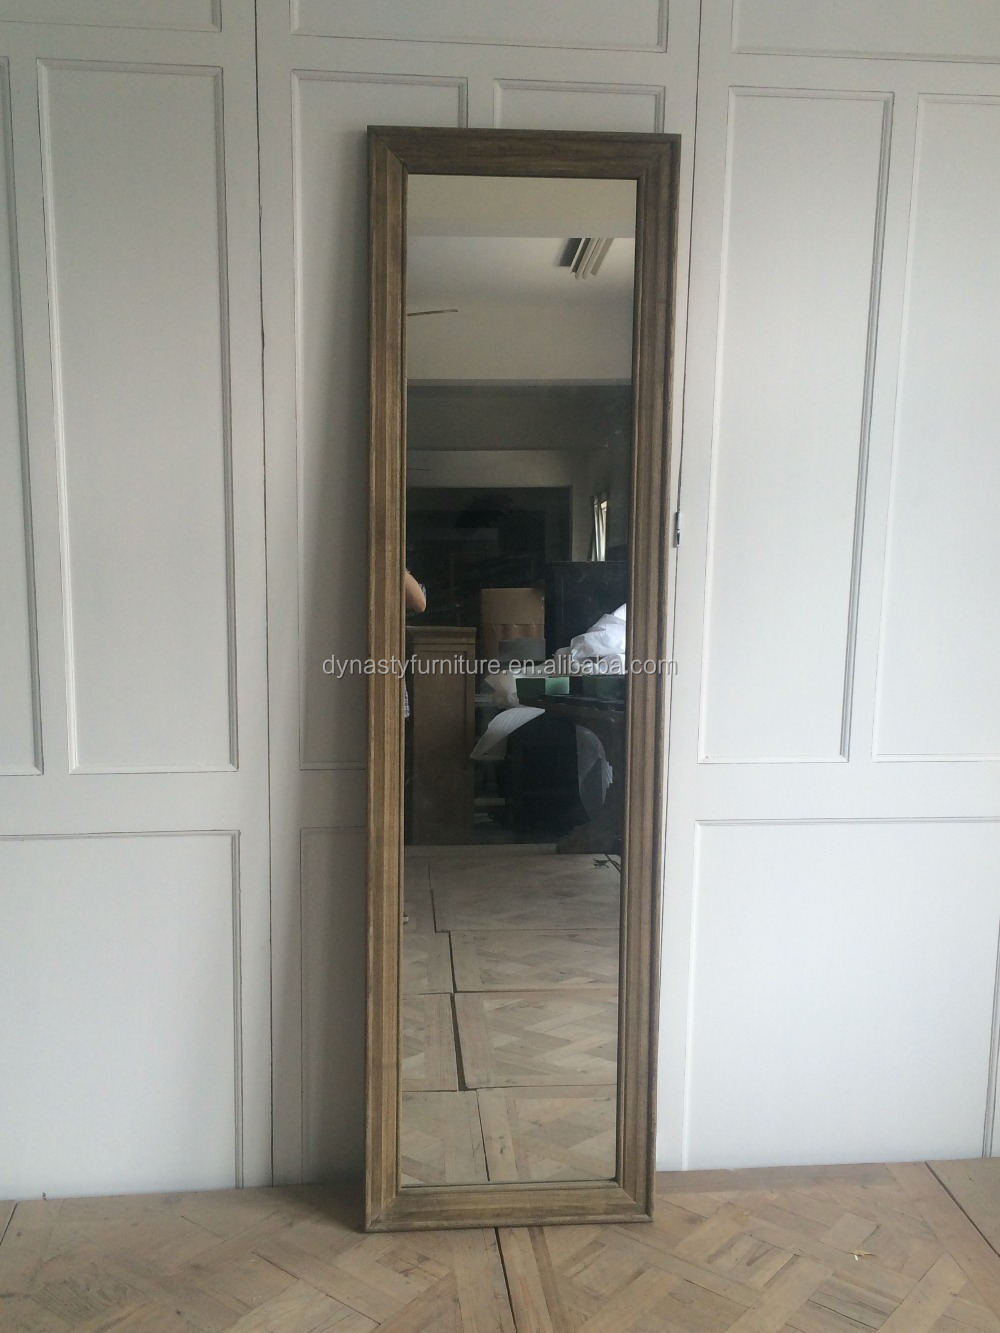 french style decorative natural wooden frame mirror